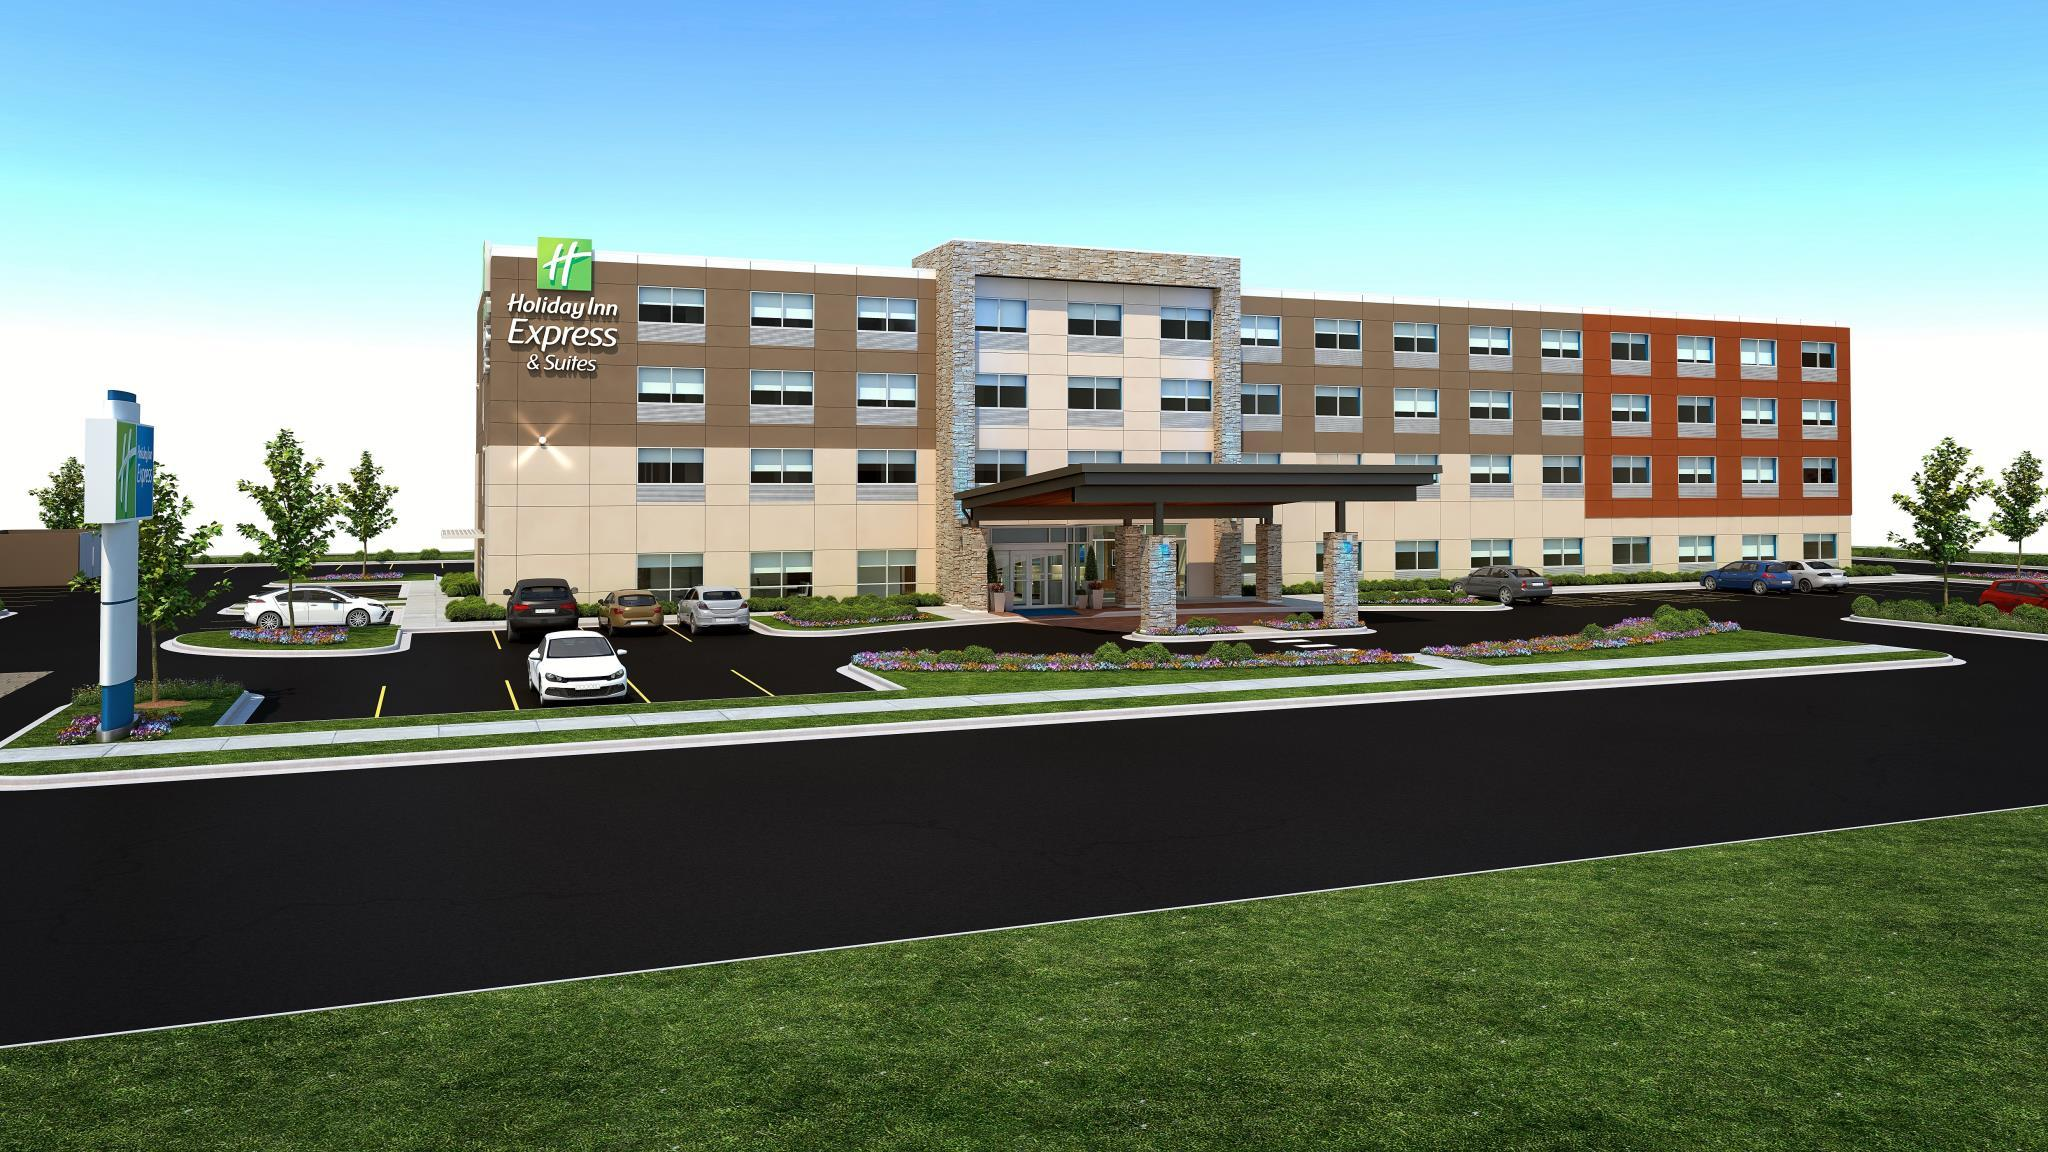 Holiday Inn Express & Suites Indianapolis NW - Whitestown, Boone